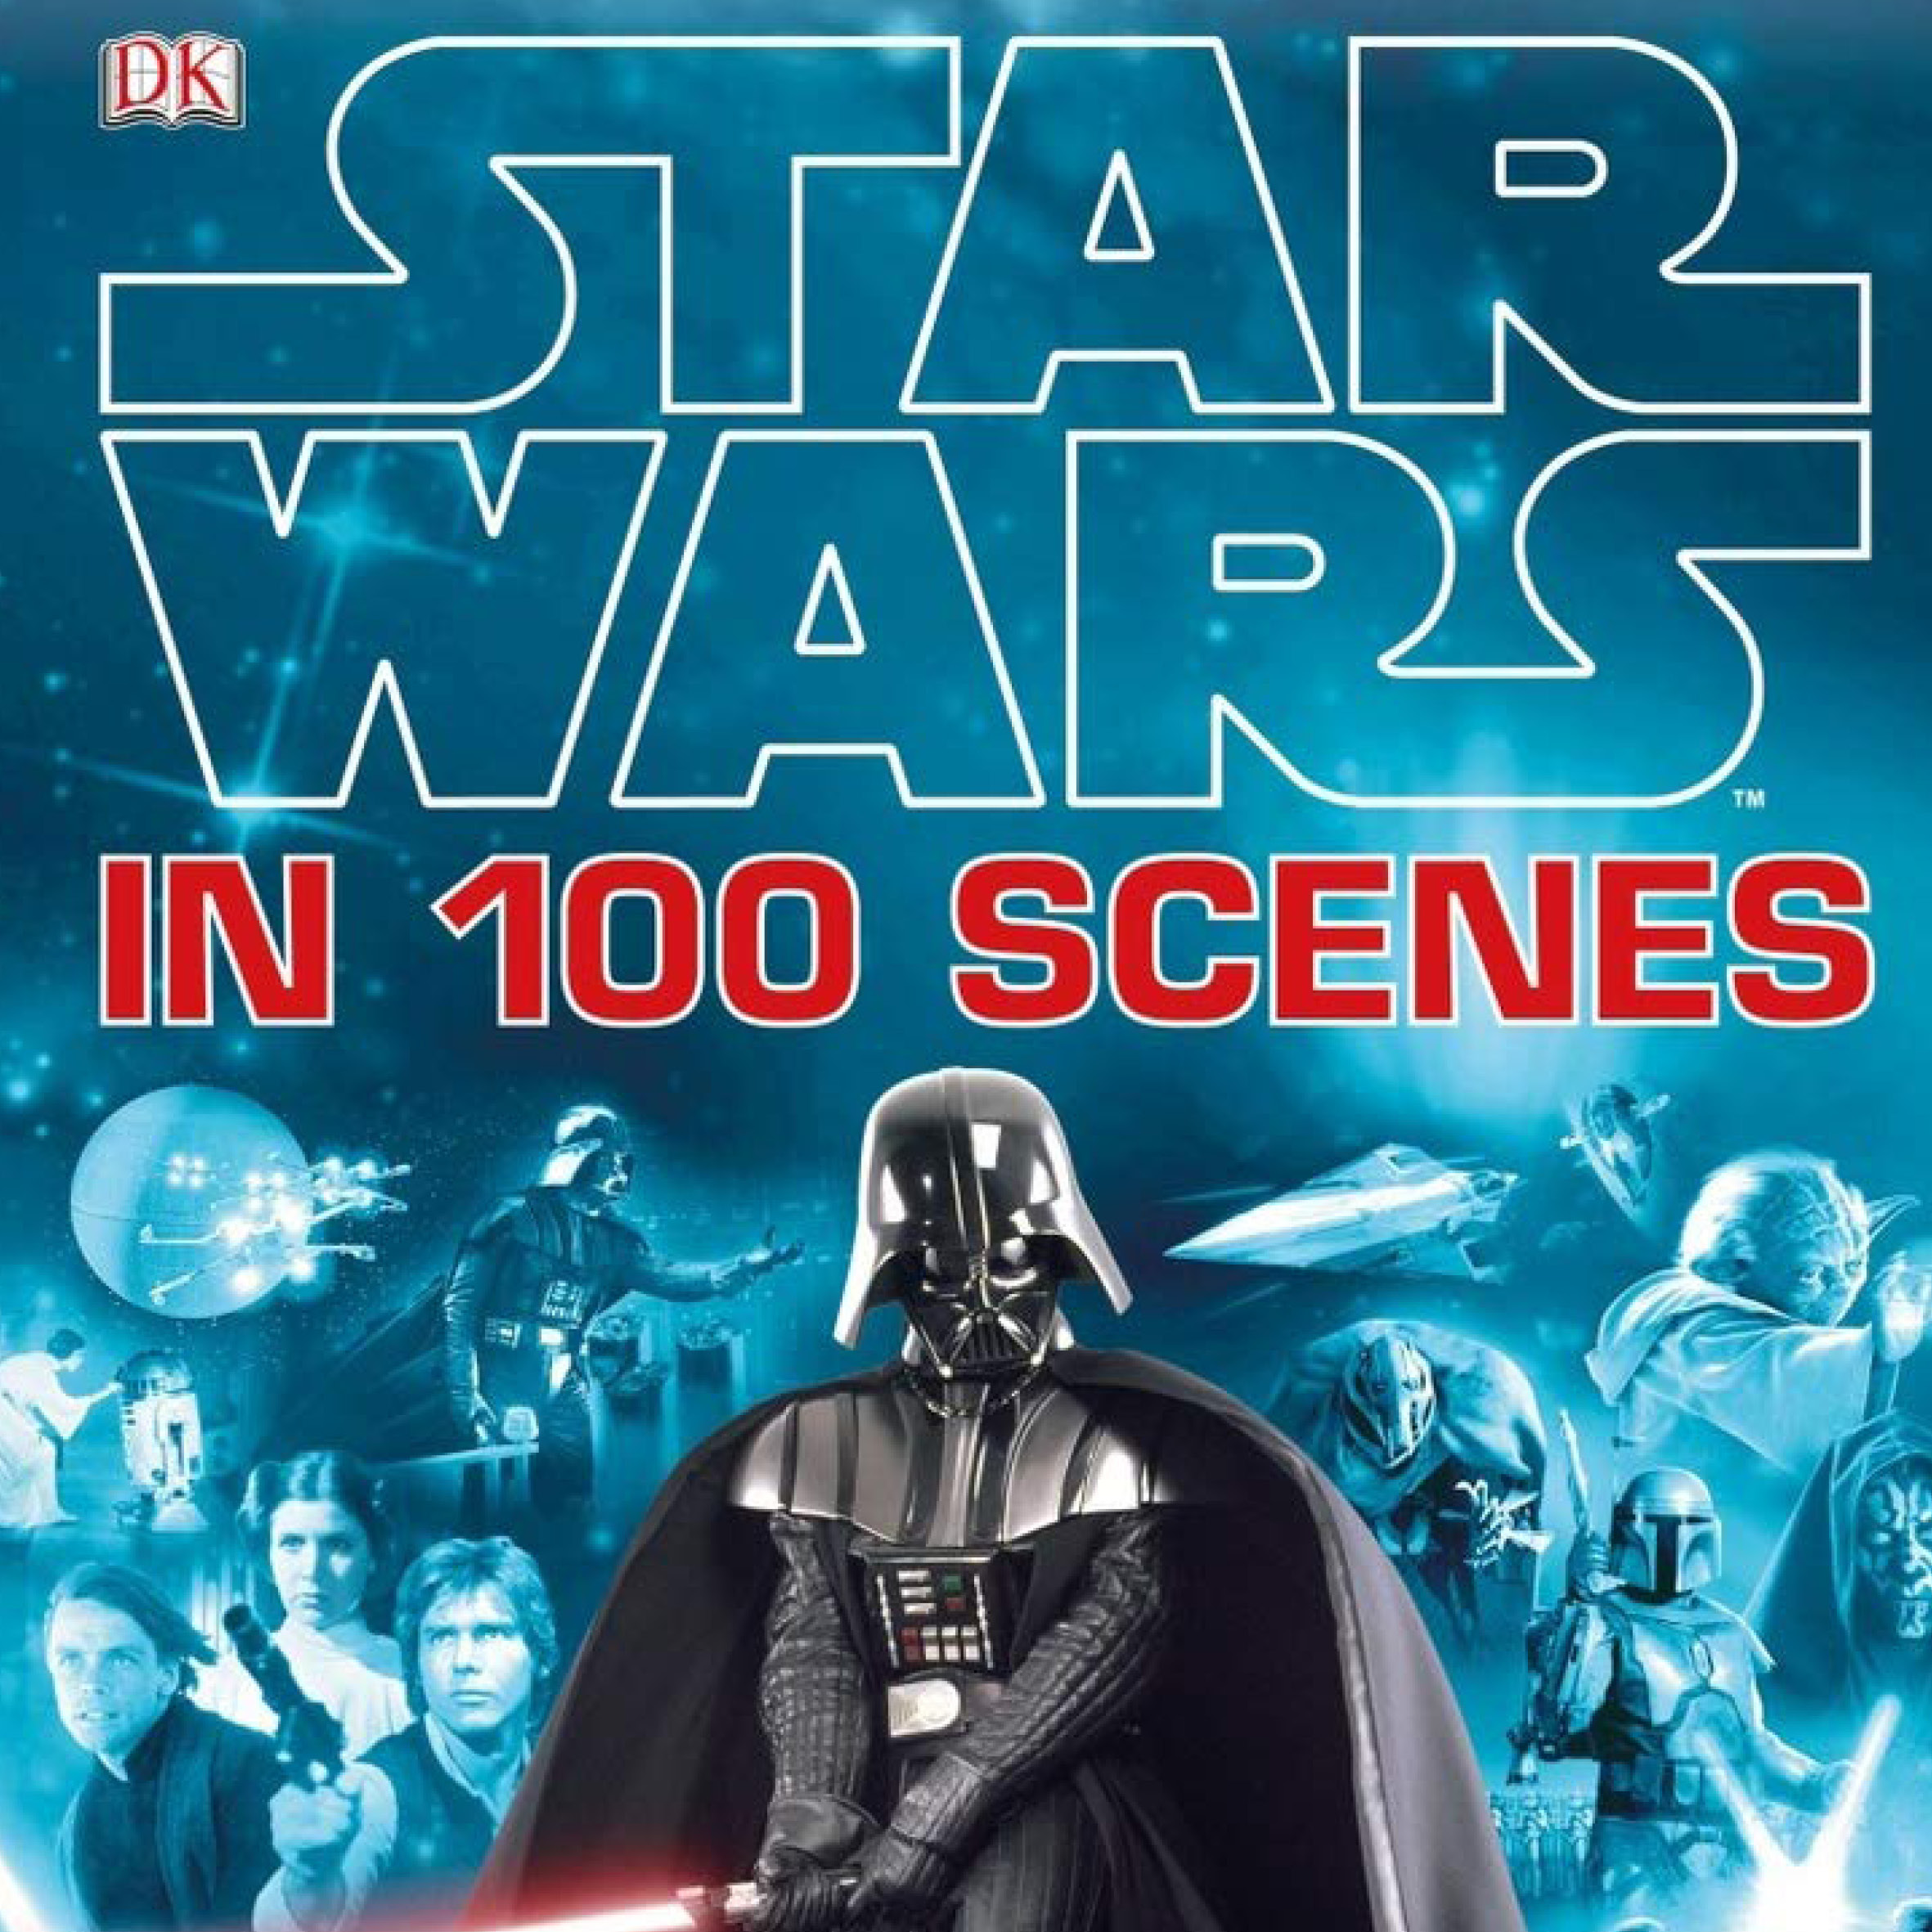 STAR WARS IN 100 SCENES THUMB